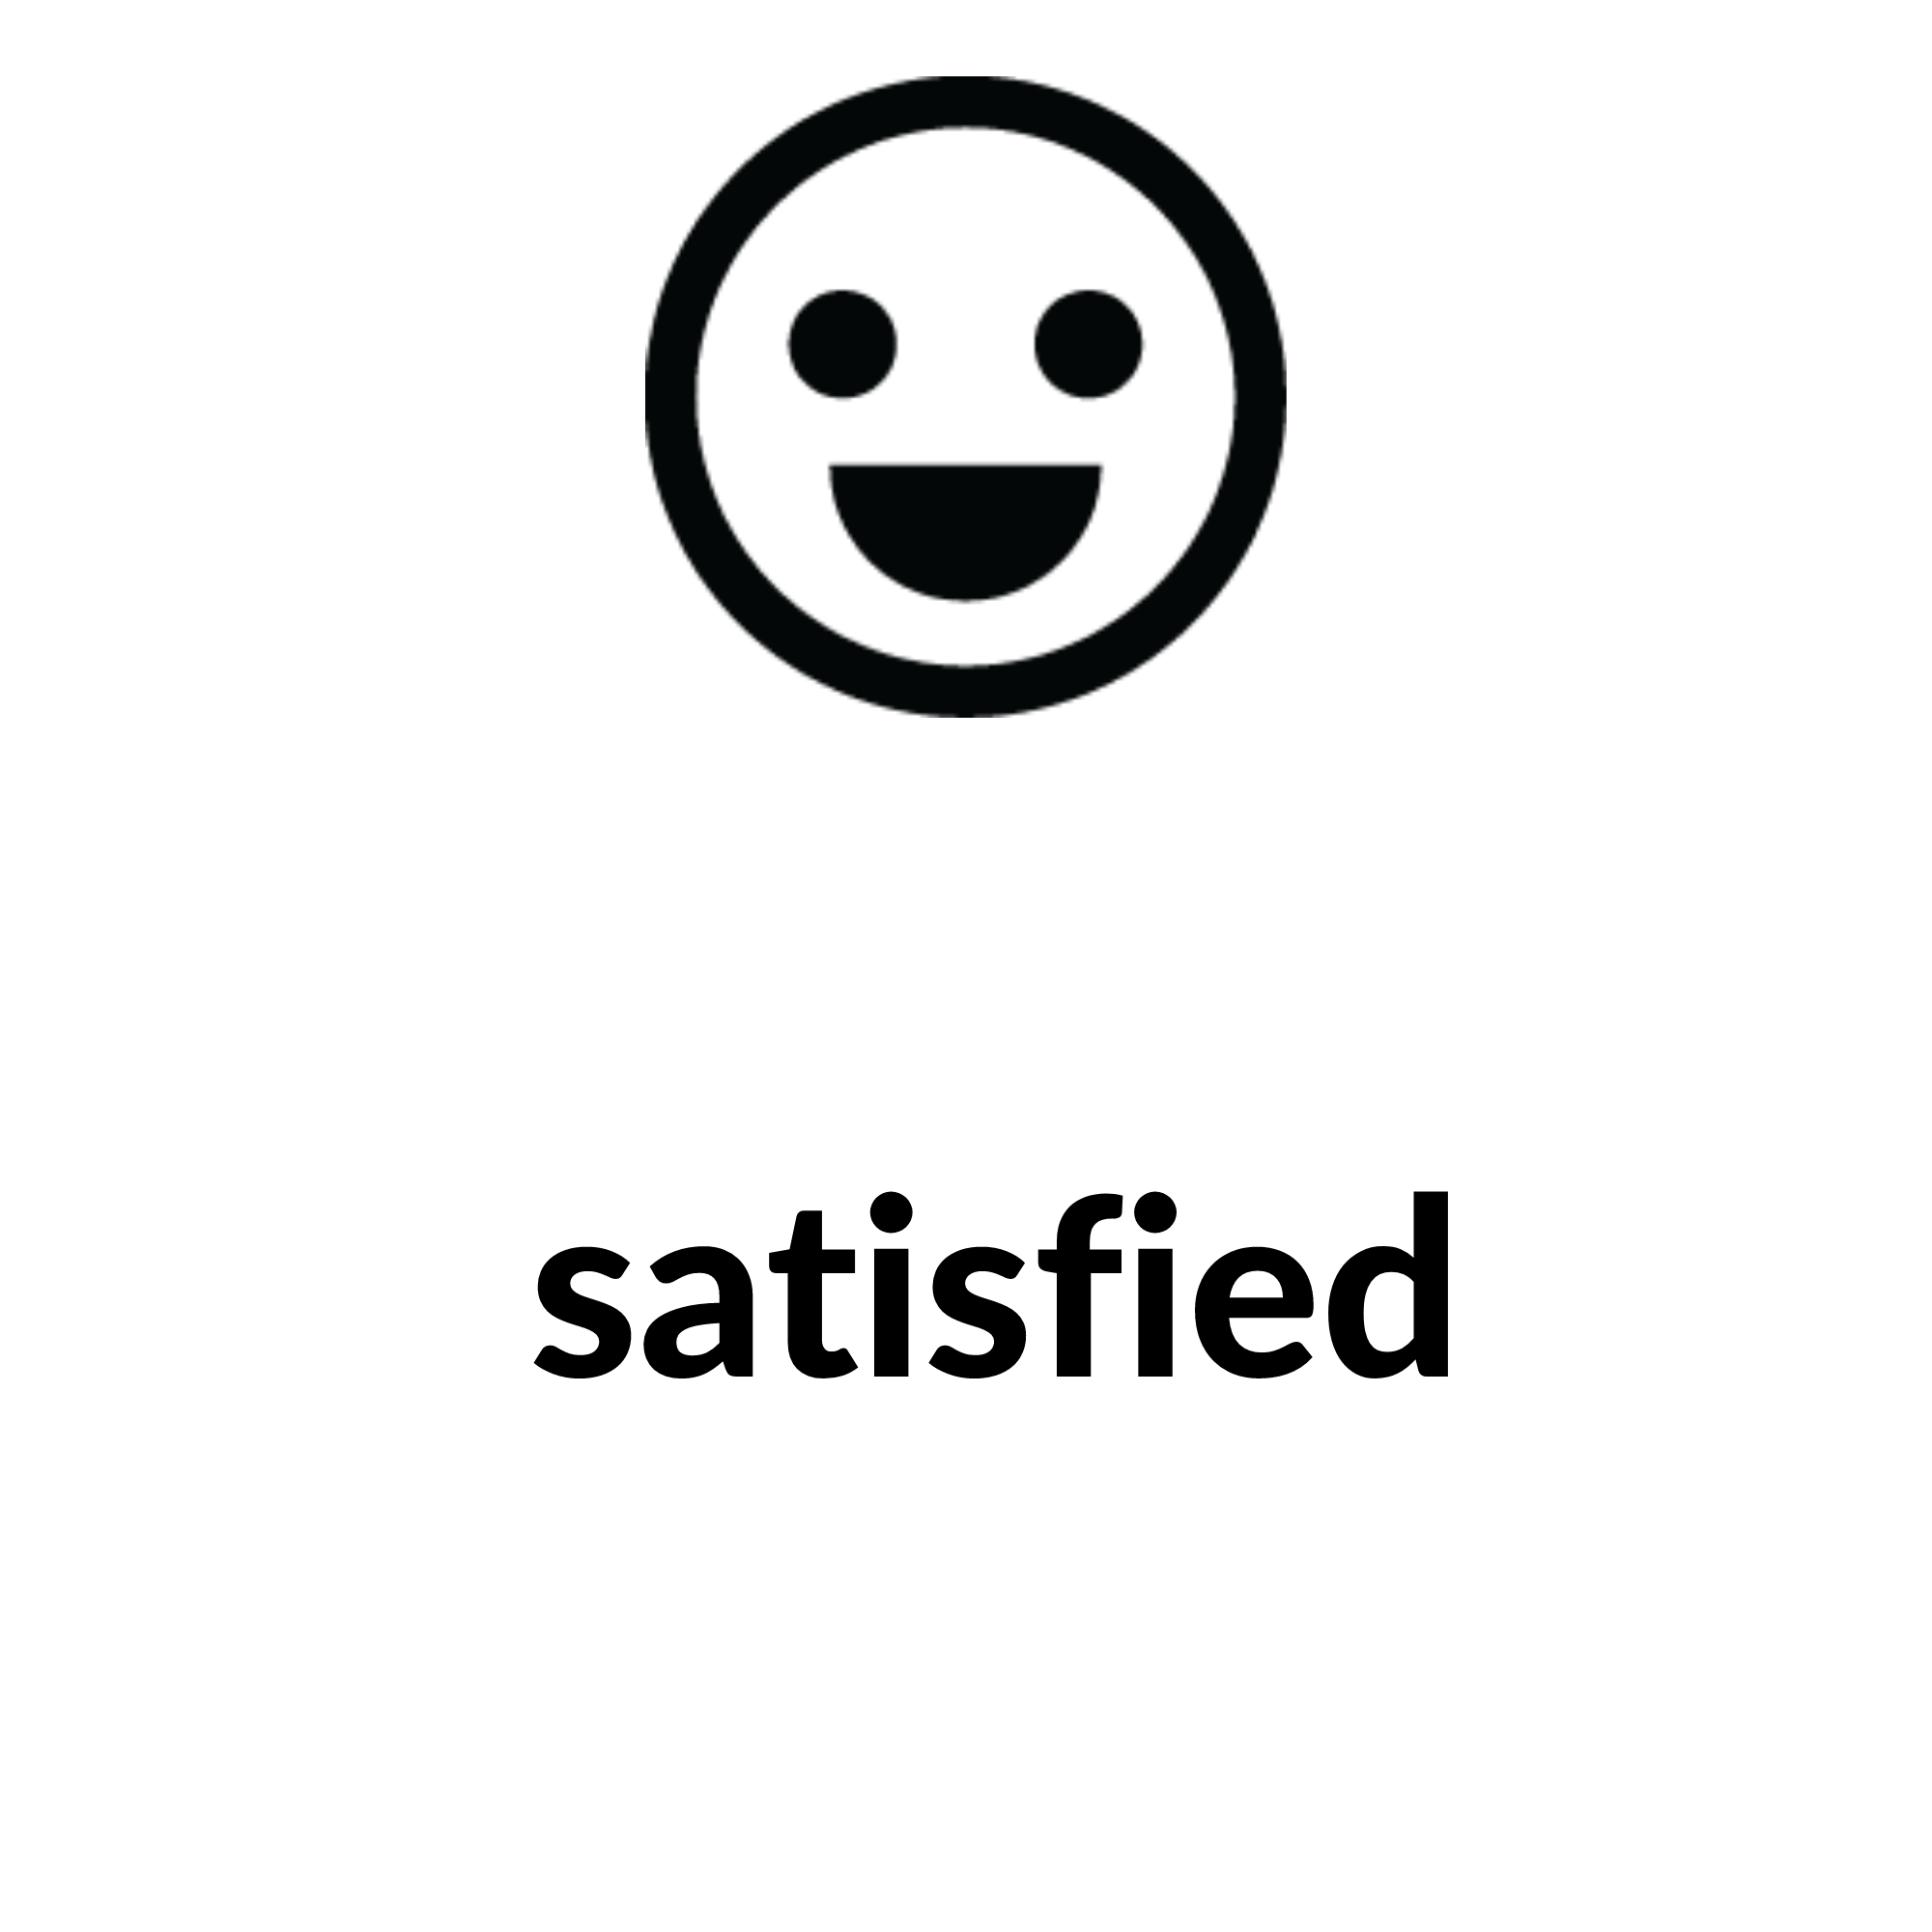 satisfied (1).png